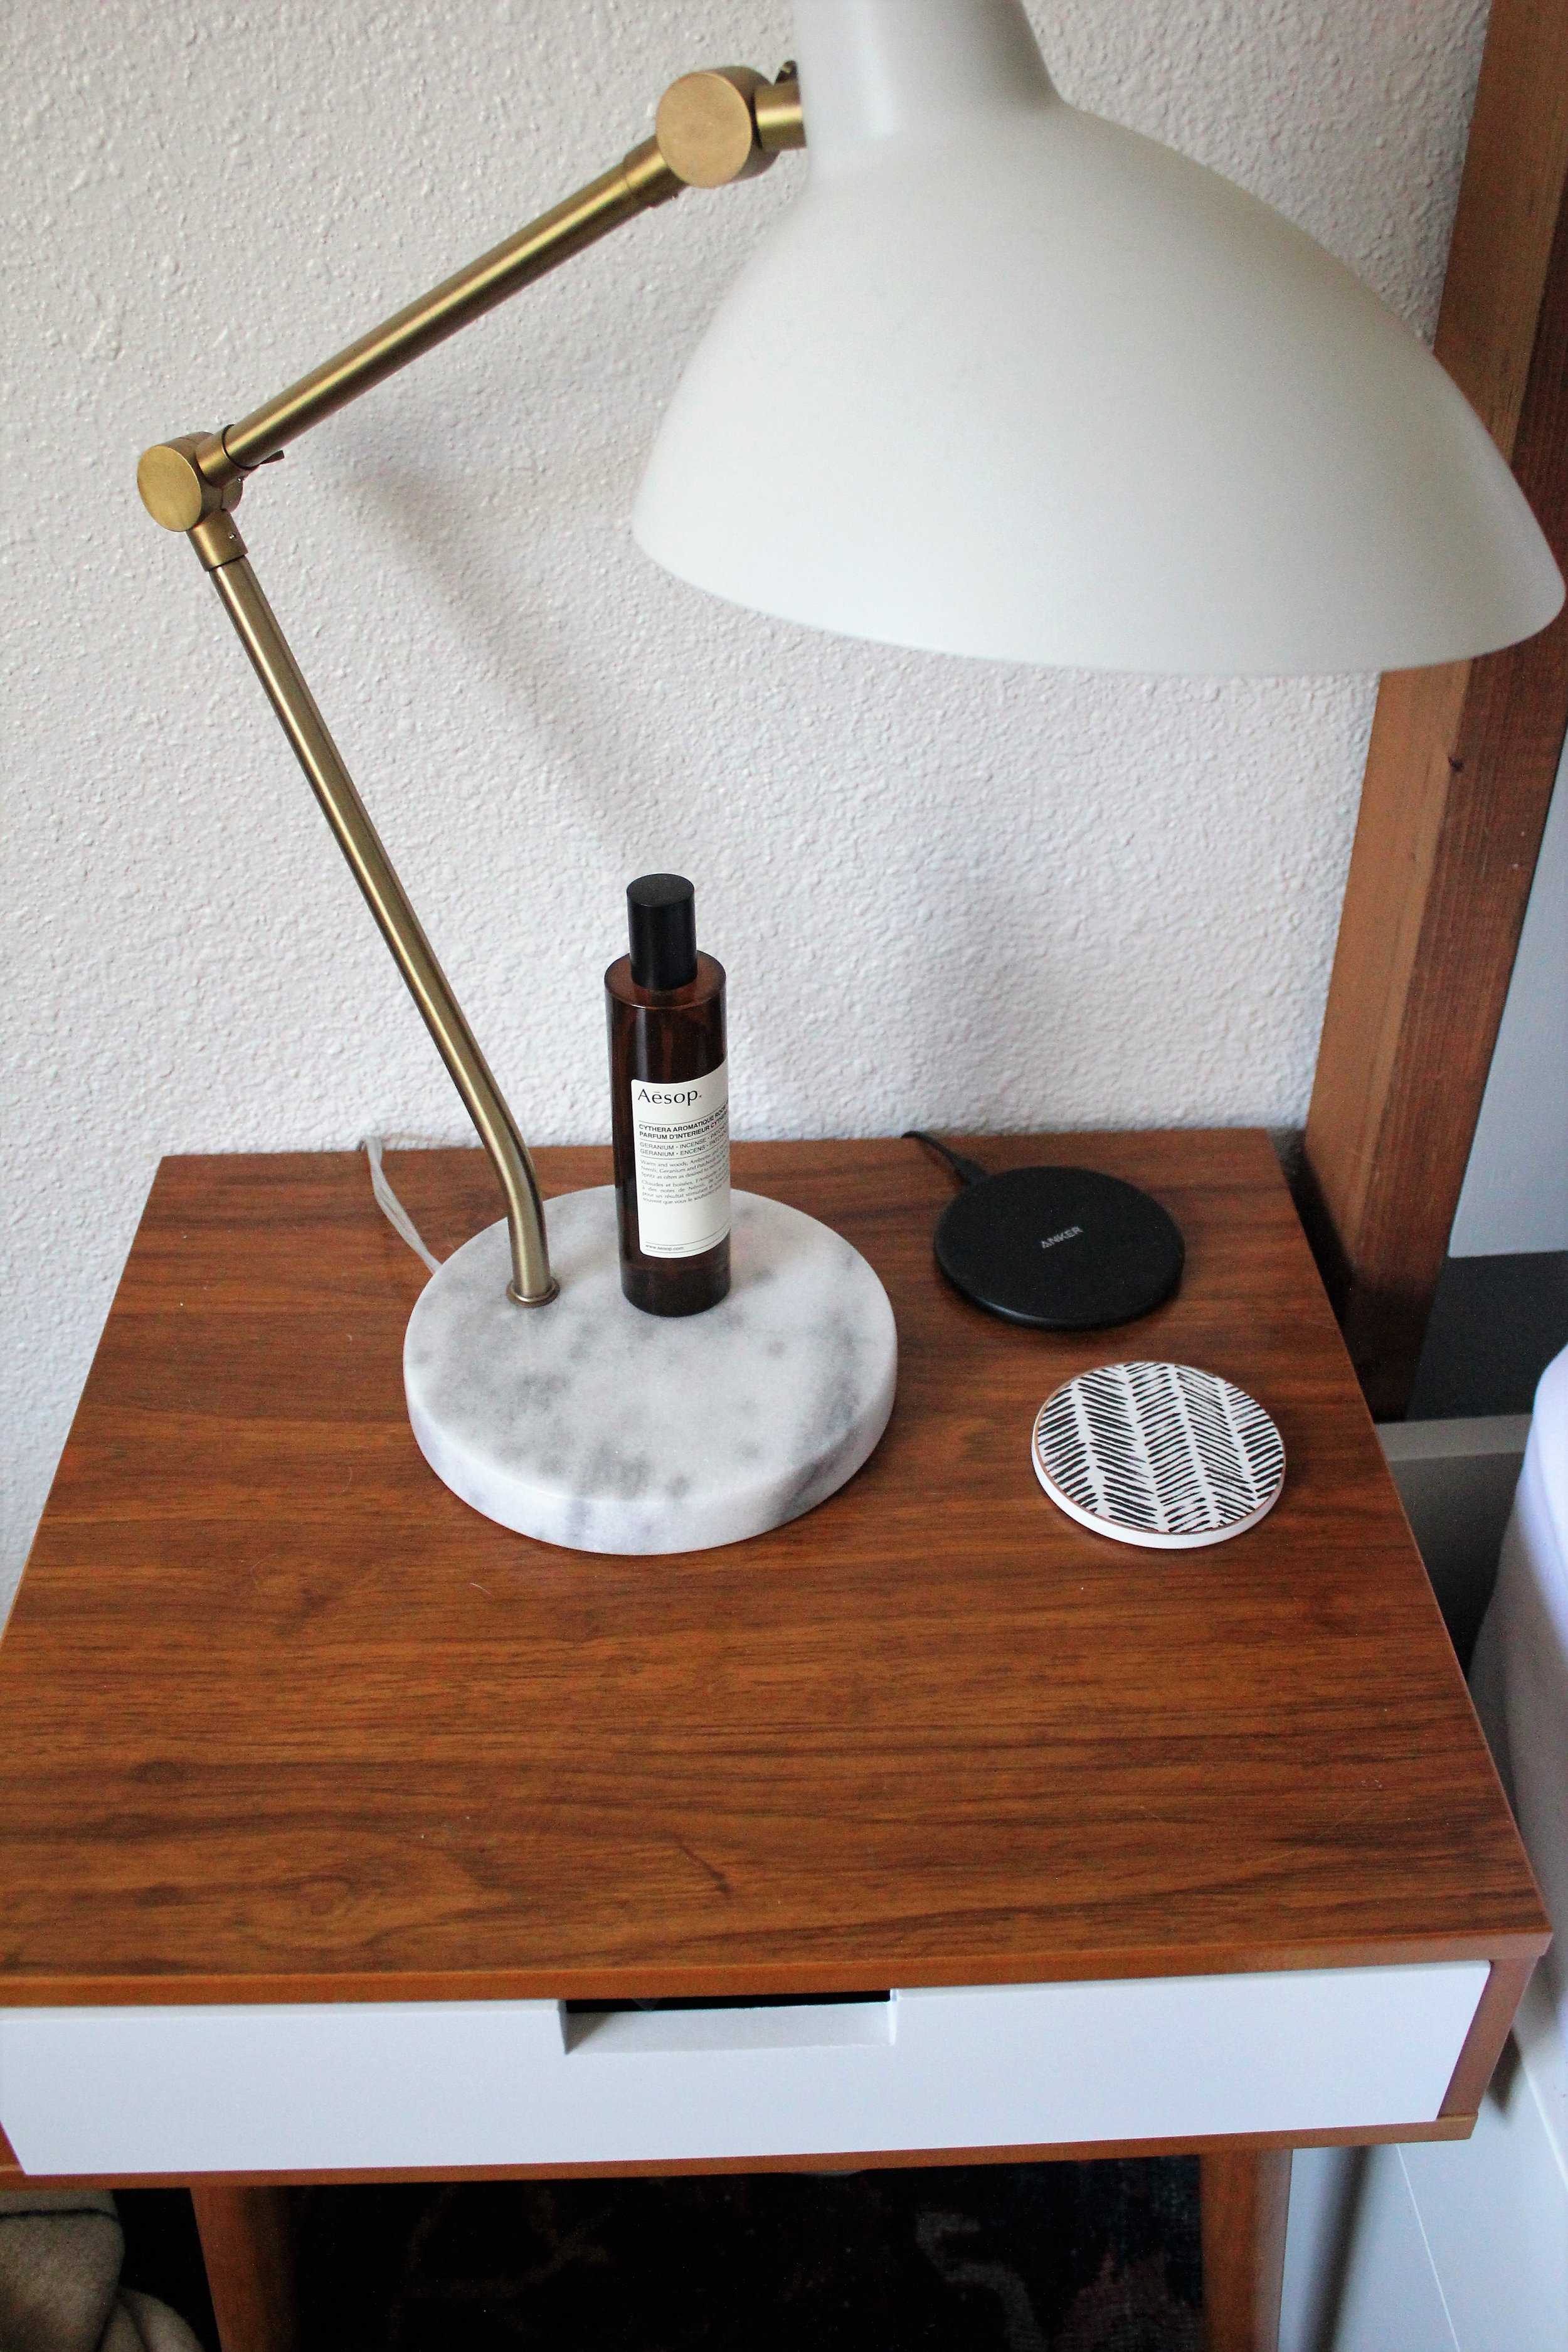 Bedside must haves - a Marble and Brass lamp, Aesop room spray, and a wireless charger